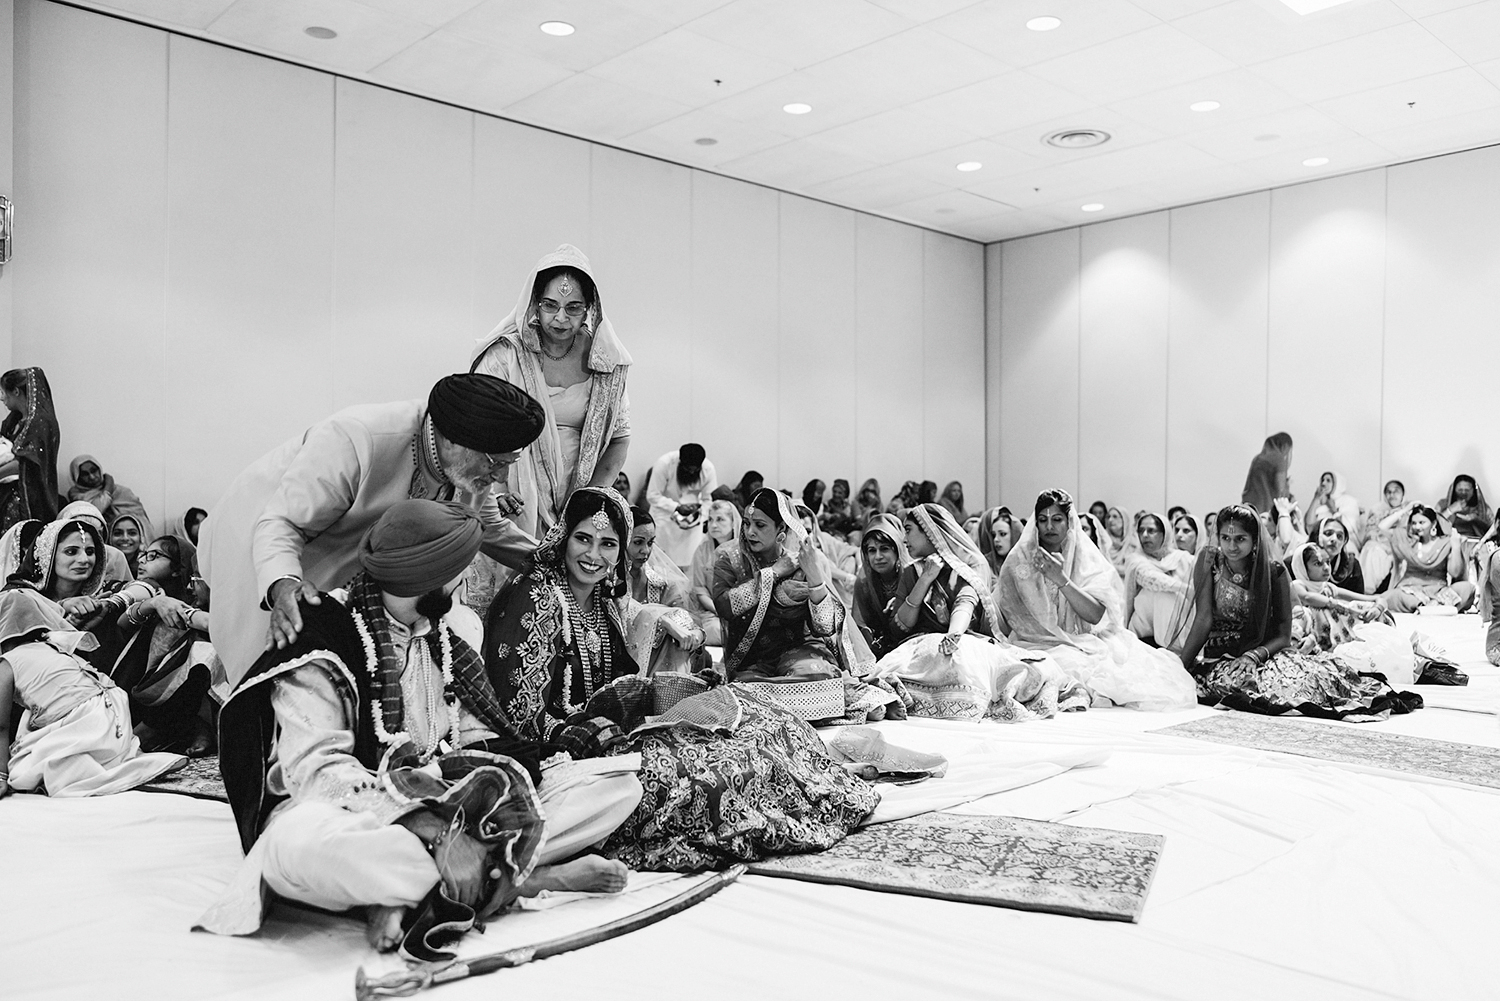 Toronto-Photojournalism-wedding-photographers-3B-Photography-Candid-Documentary-Film-Photography-Analog-Ontario-Hamilton-Port-Perry-Venue-temple-ceremony-sikh-tradition-bride-and-groom-marriage-congratulations-from-dad.jpg